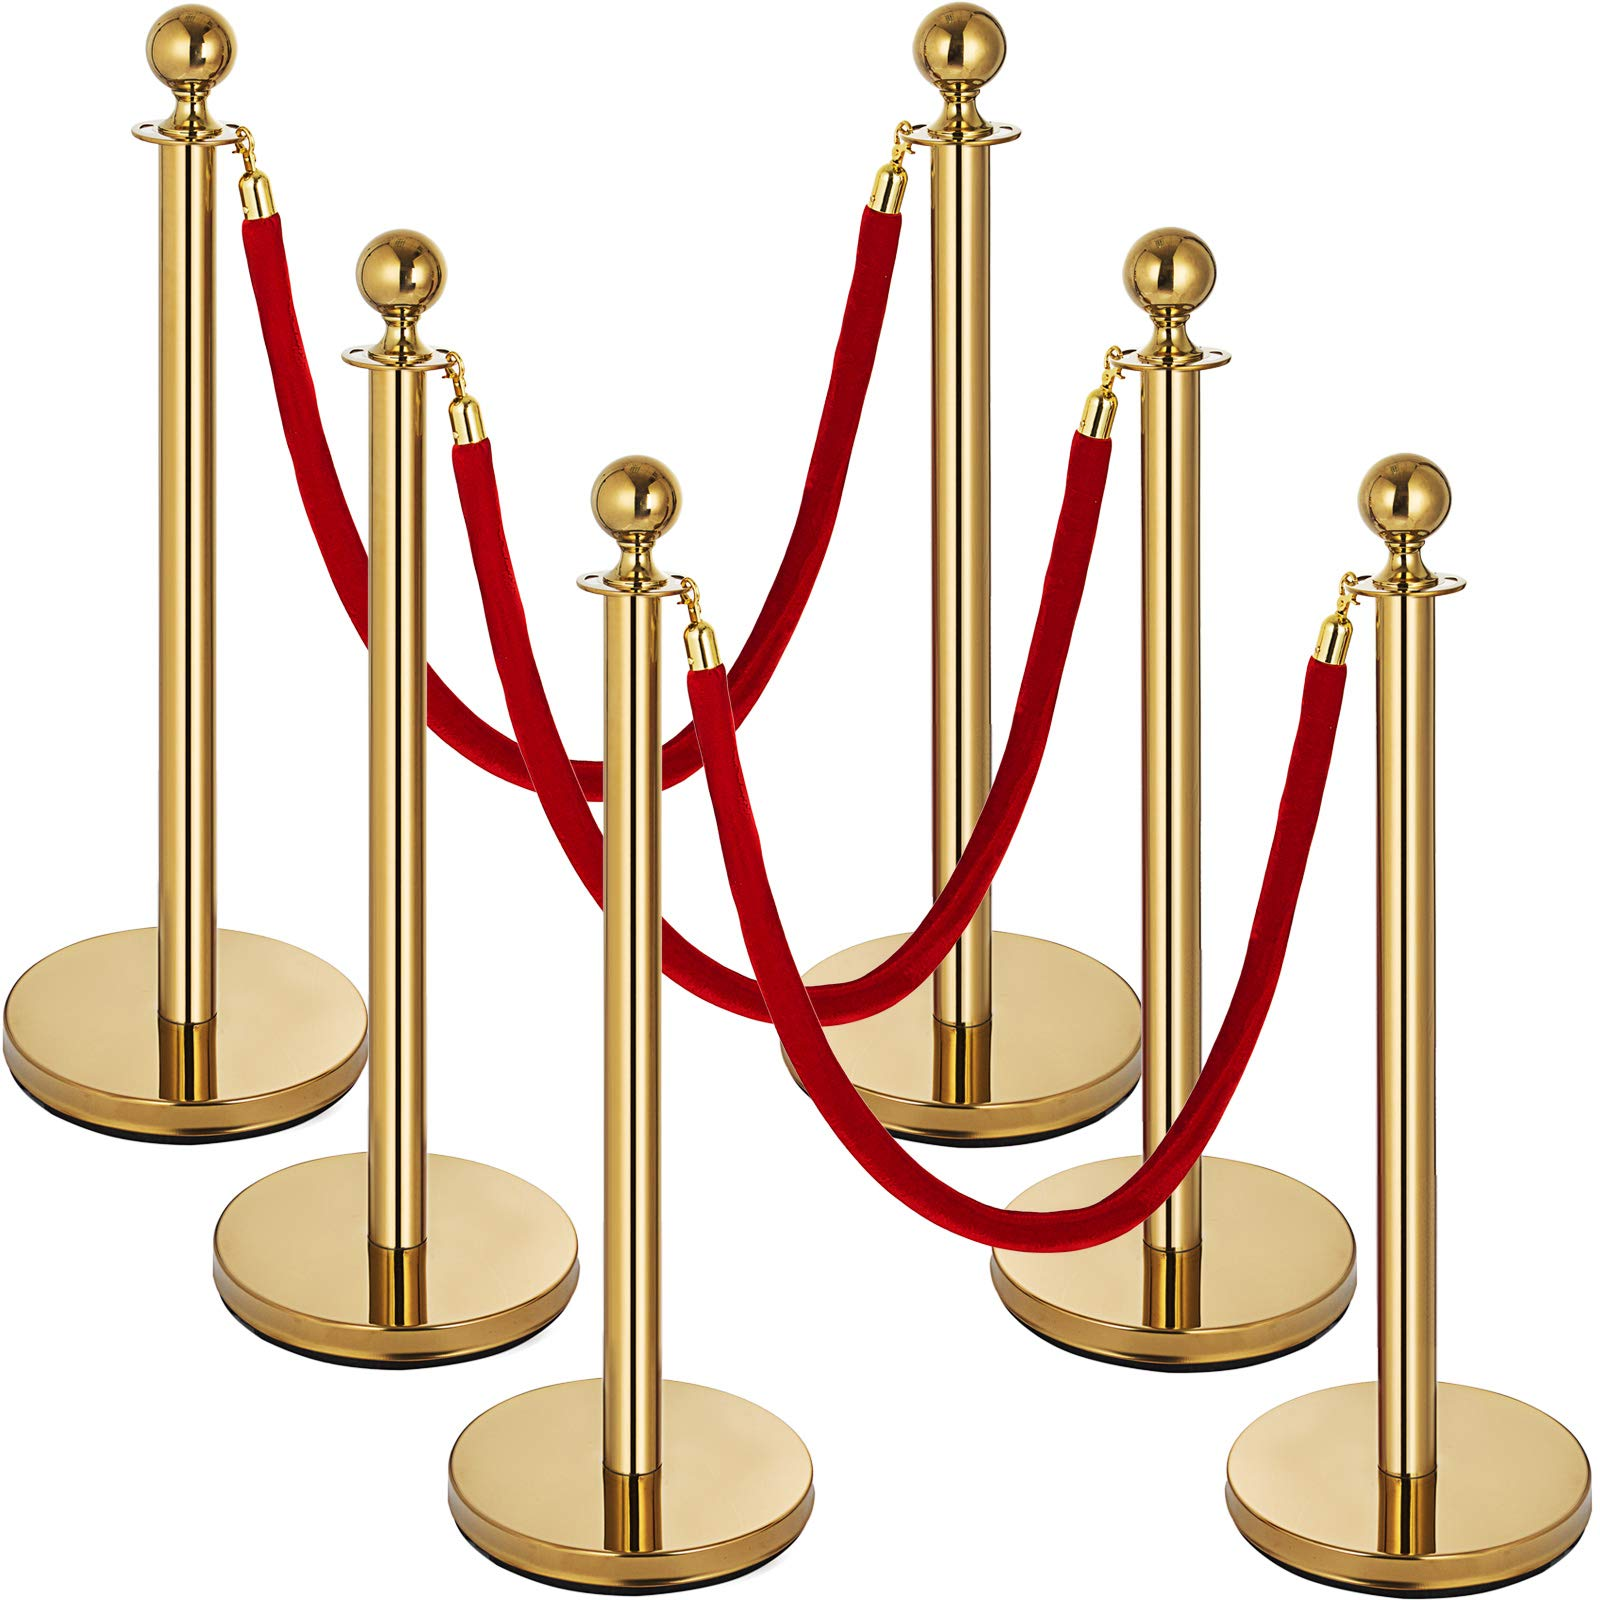 Mophorn 6 PCS Gold Stanchion Post Queue Red Stand Rope Retractable 38In Crowd Control Queue Line Barrier (Gold-Red Rope)